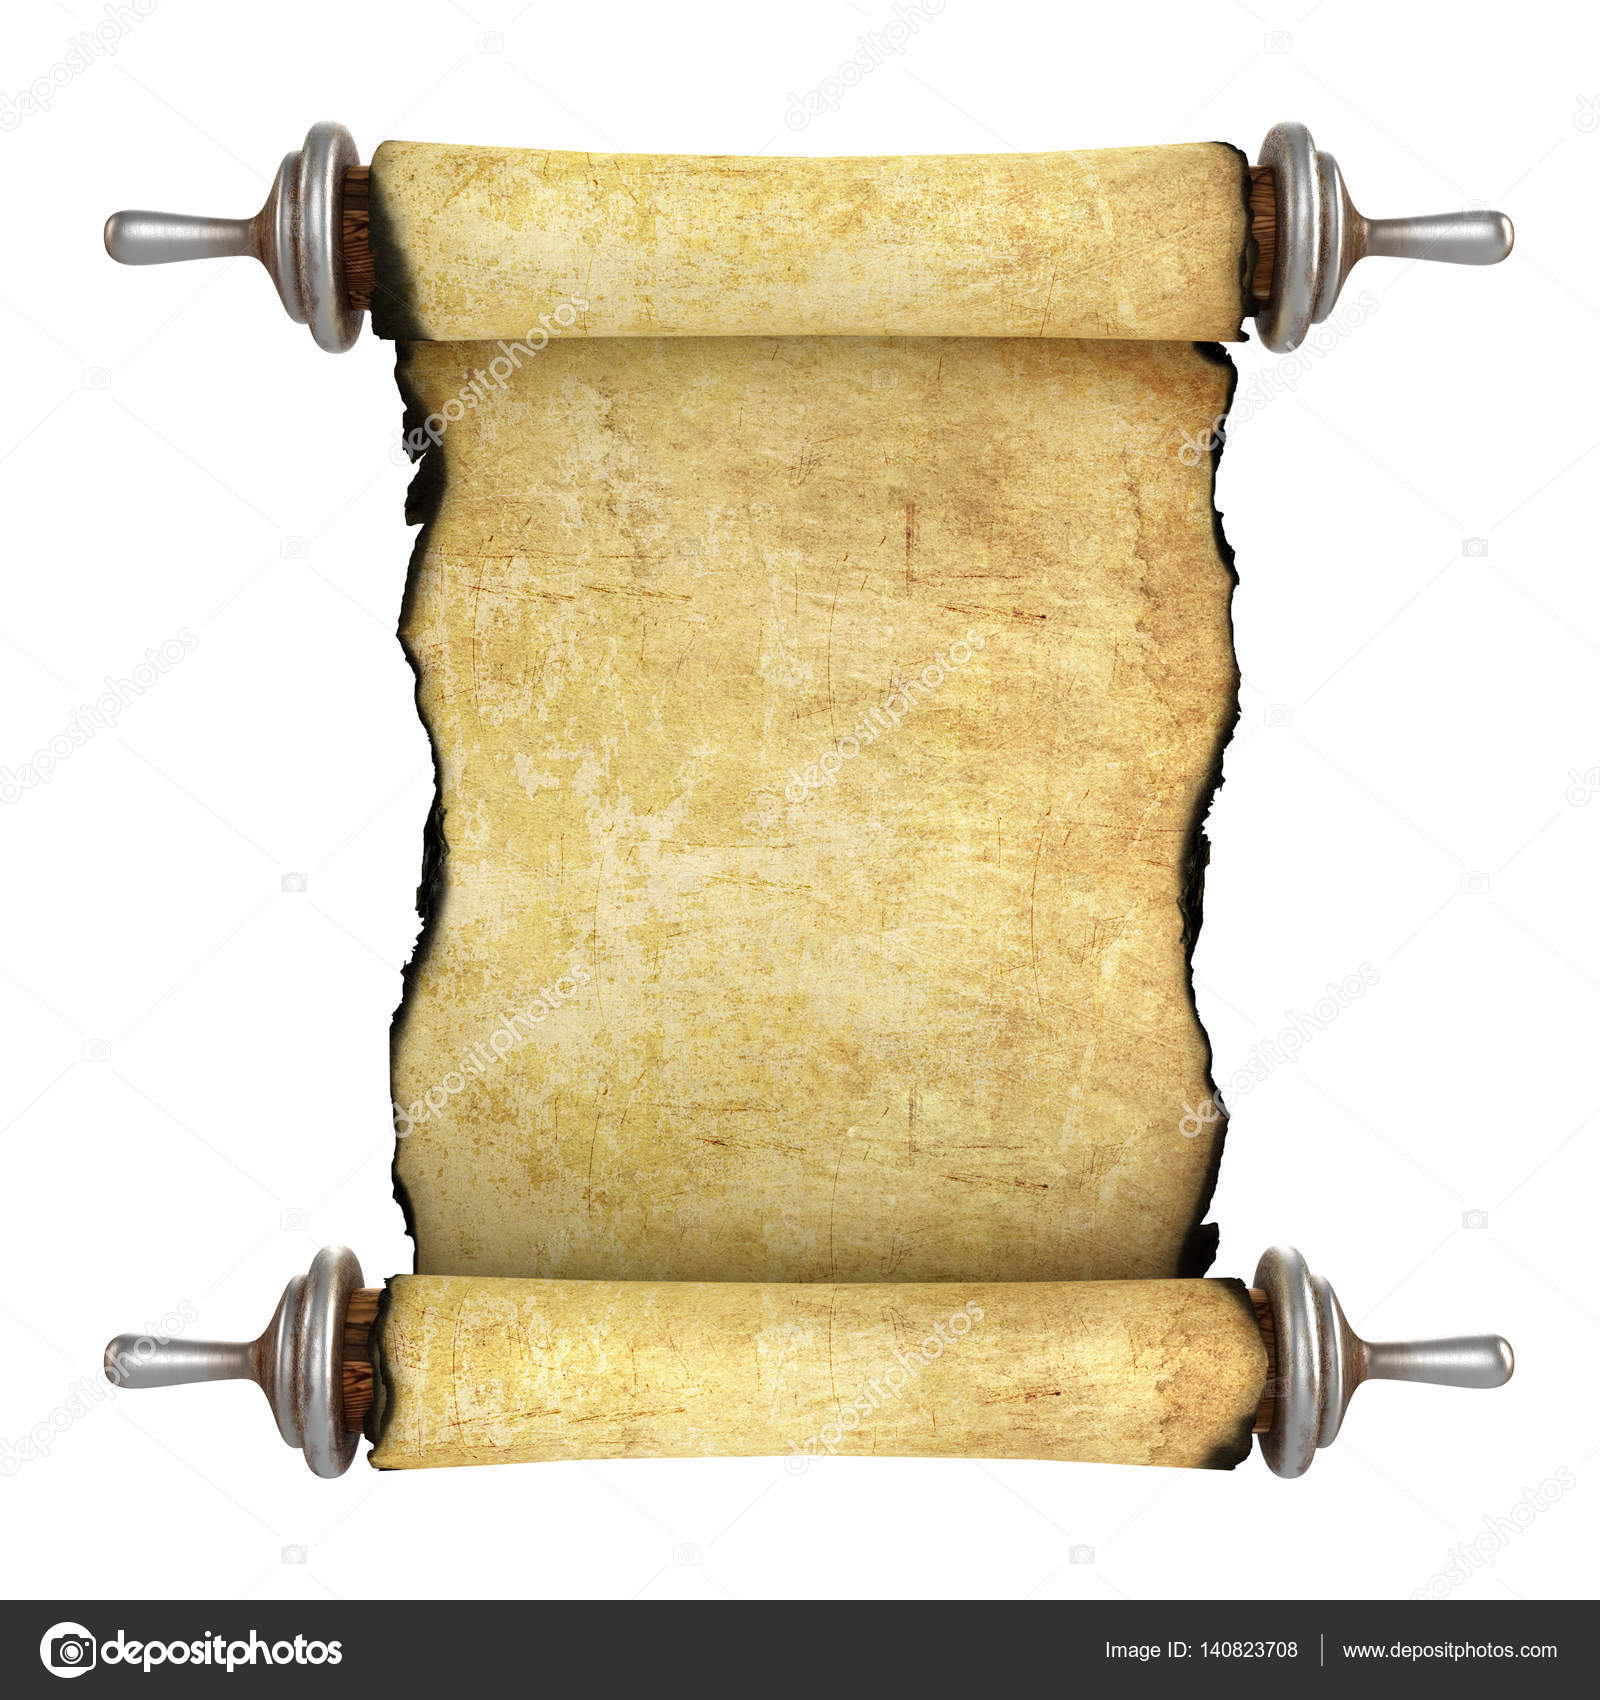 Antique Scrollimgs: Vintage Blank Paper Scroll Isolated On White Background